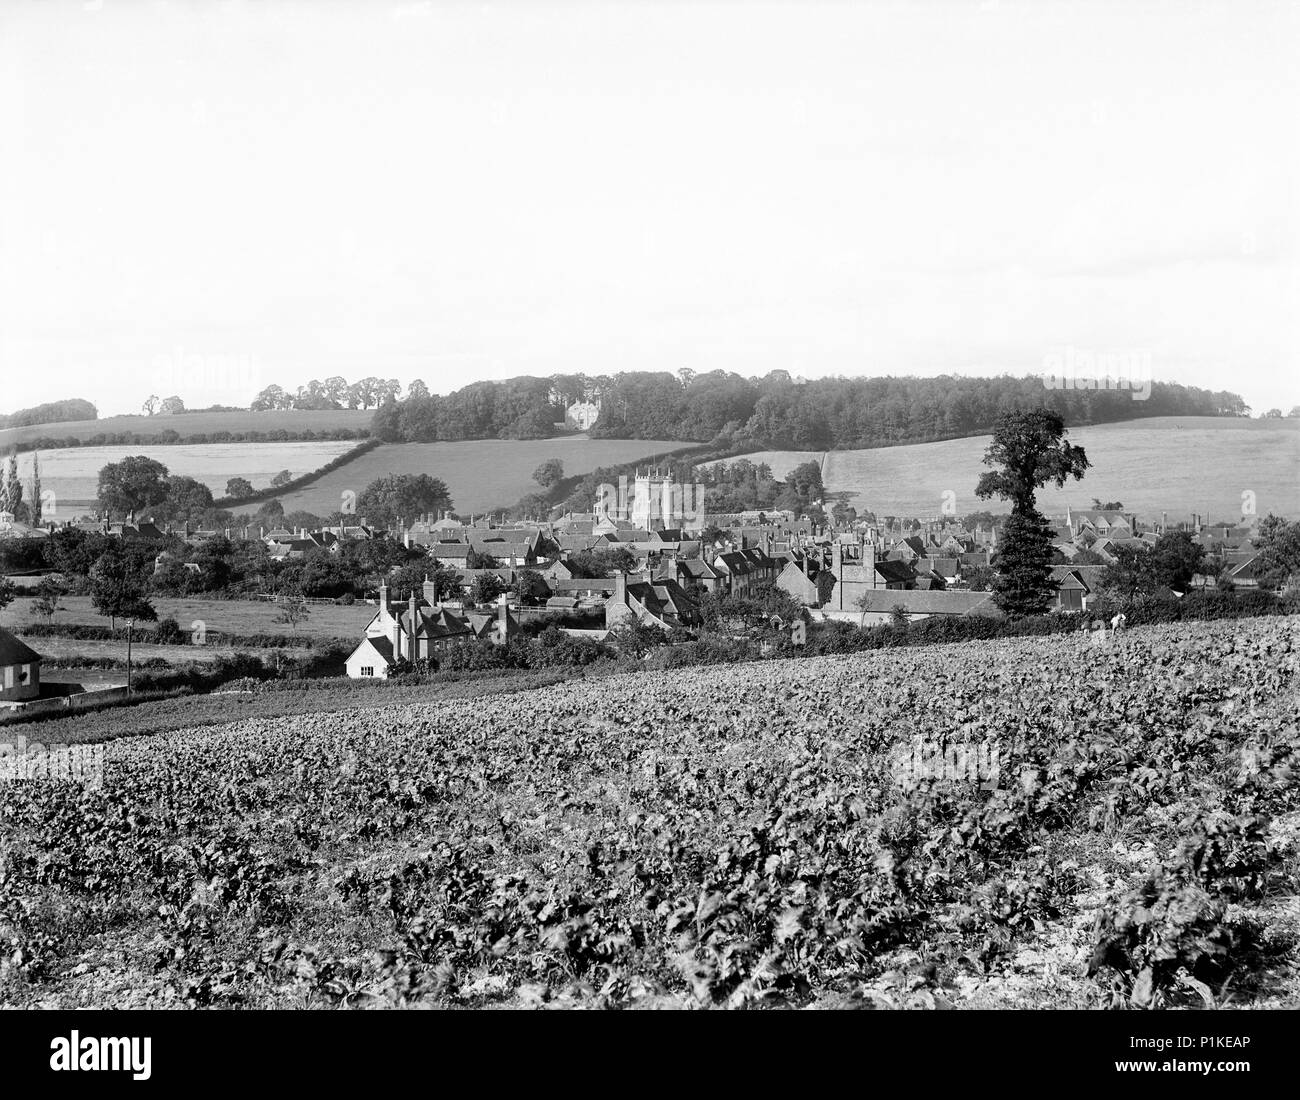 Amersham, Buckinghamshire, c1860-c1922. A view of the town, lying in the valley of the Misbourne, showing the tower of St Mary's Church. In 1892, the  - Stock Image